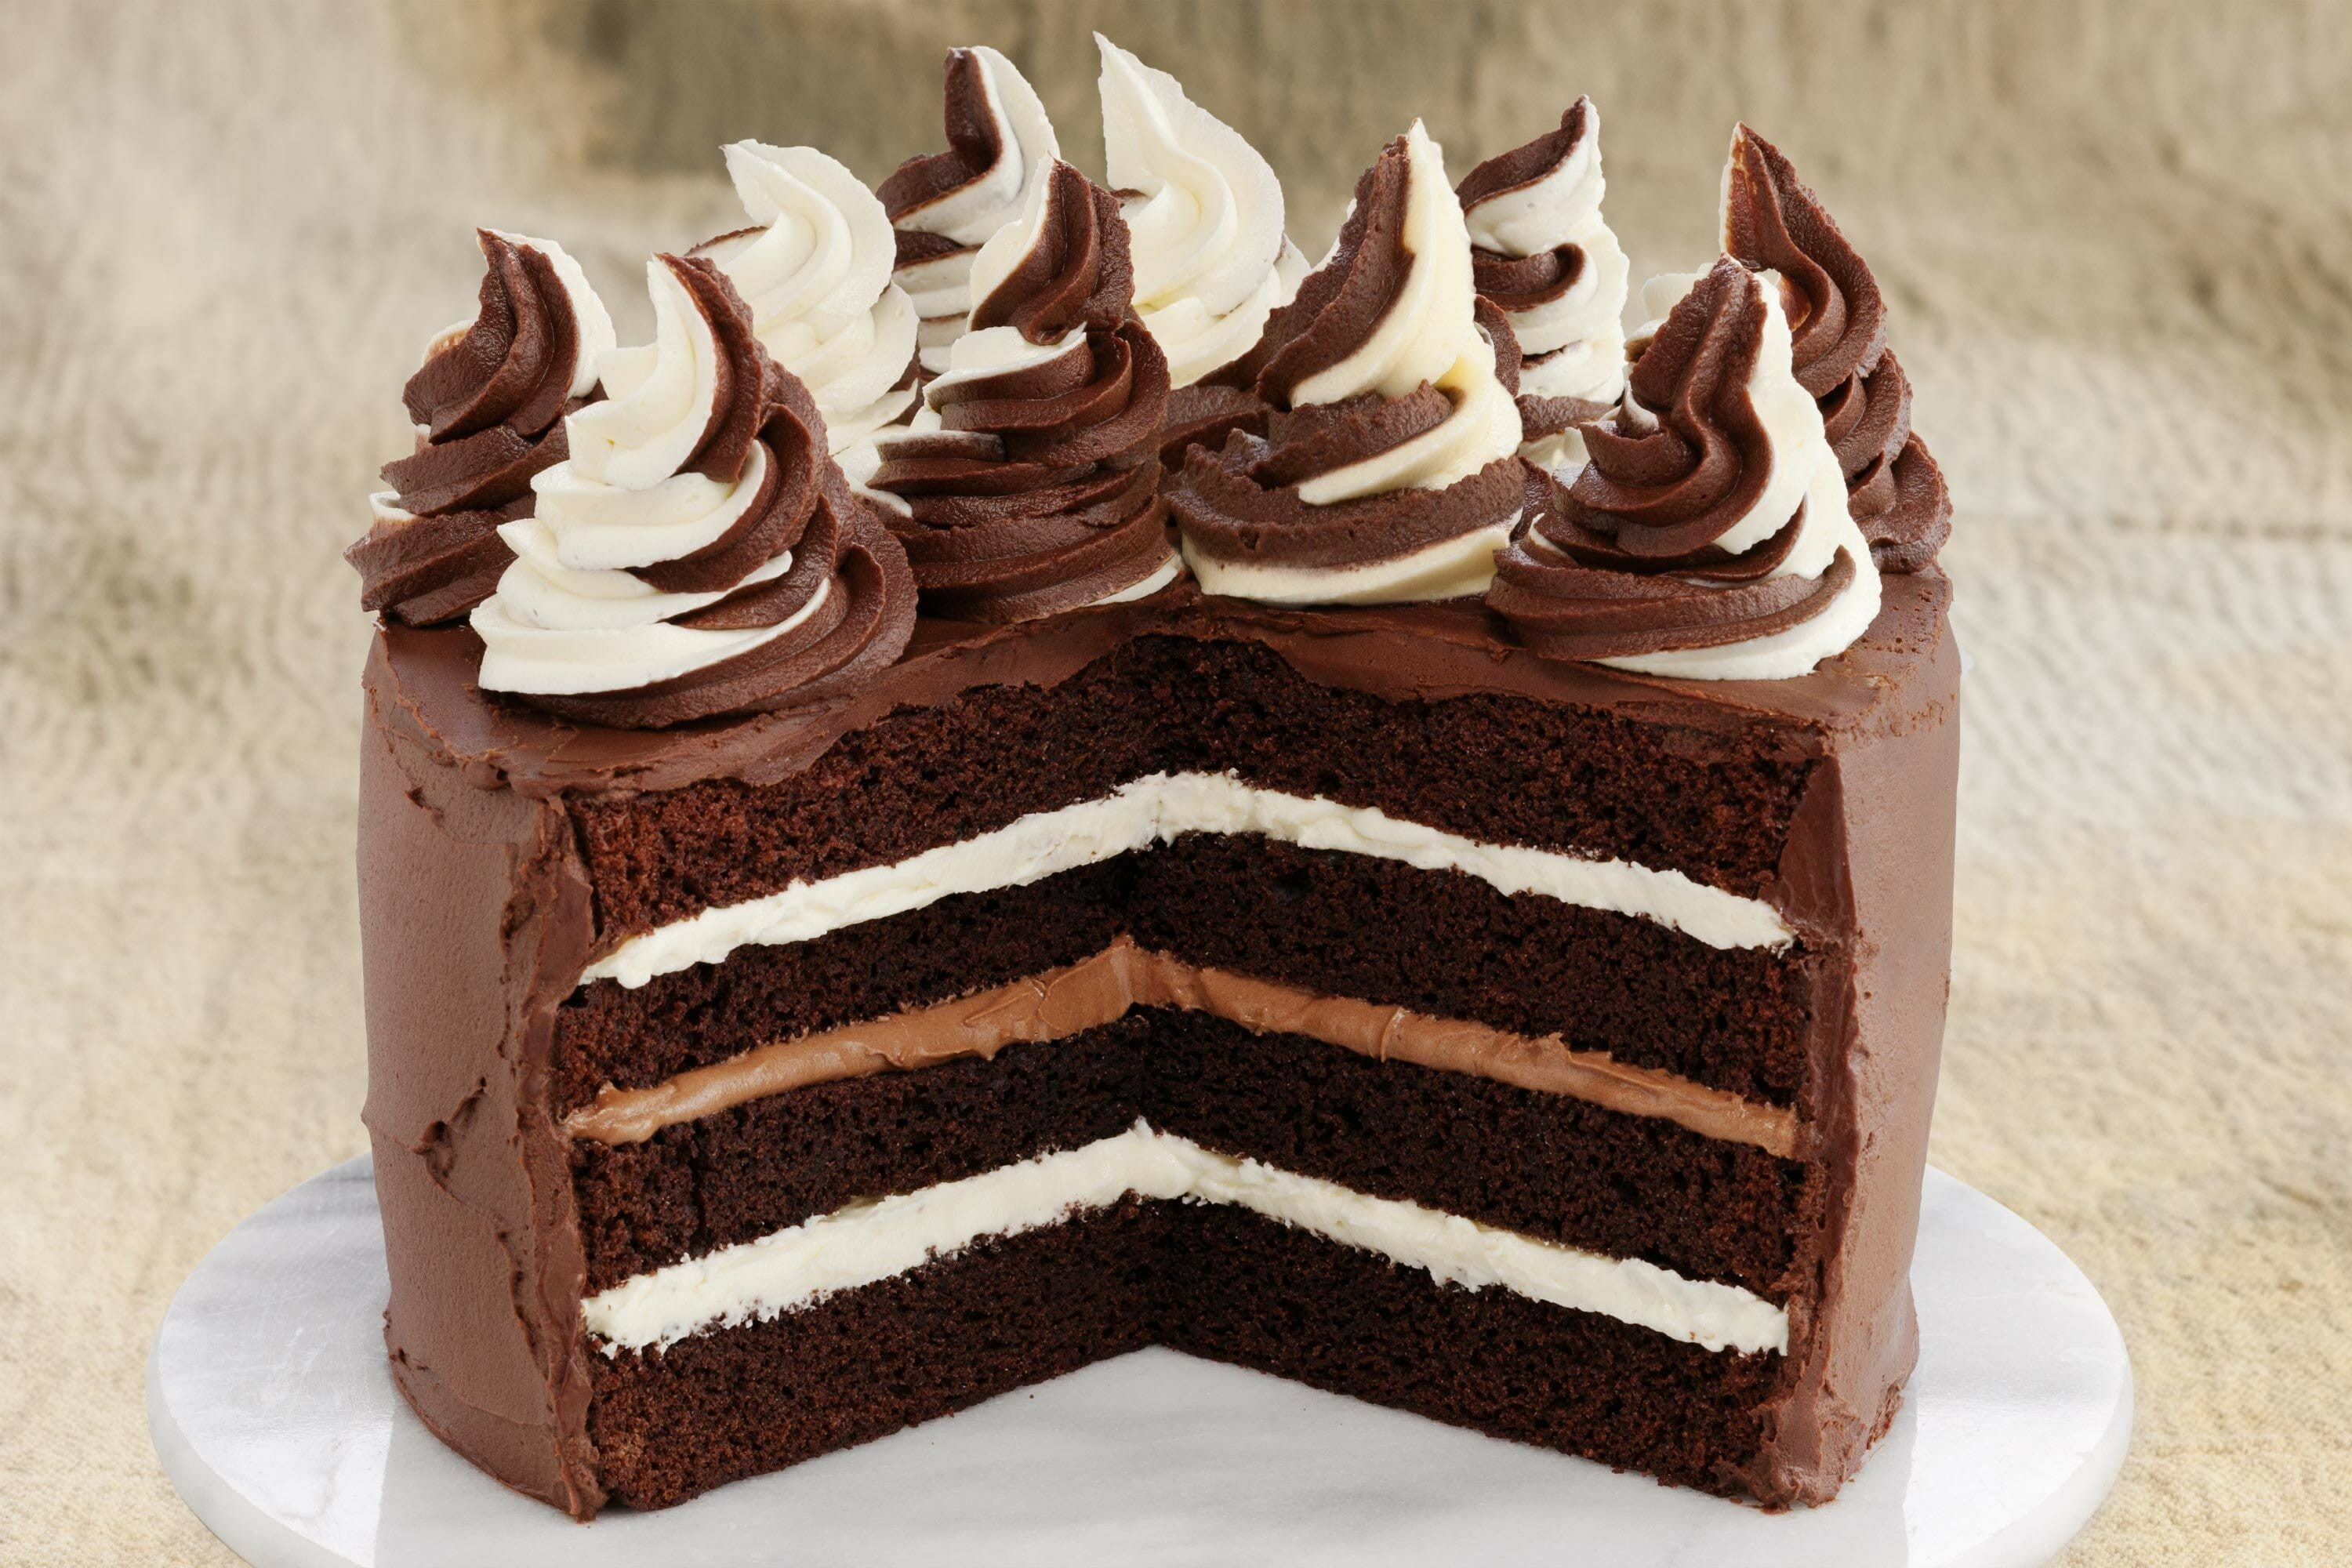 Chocolate And Mascarpone Truffle Cake